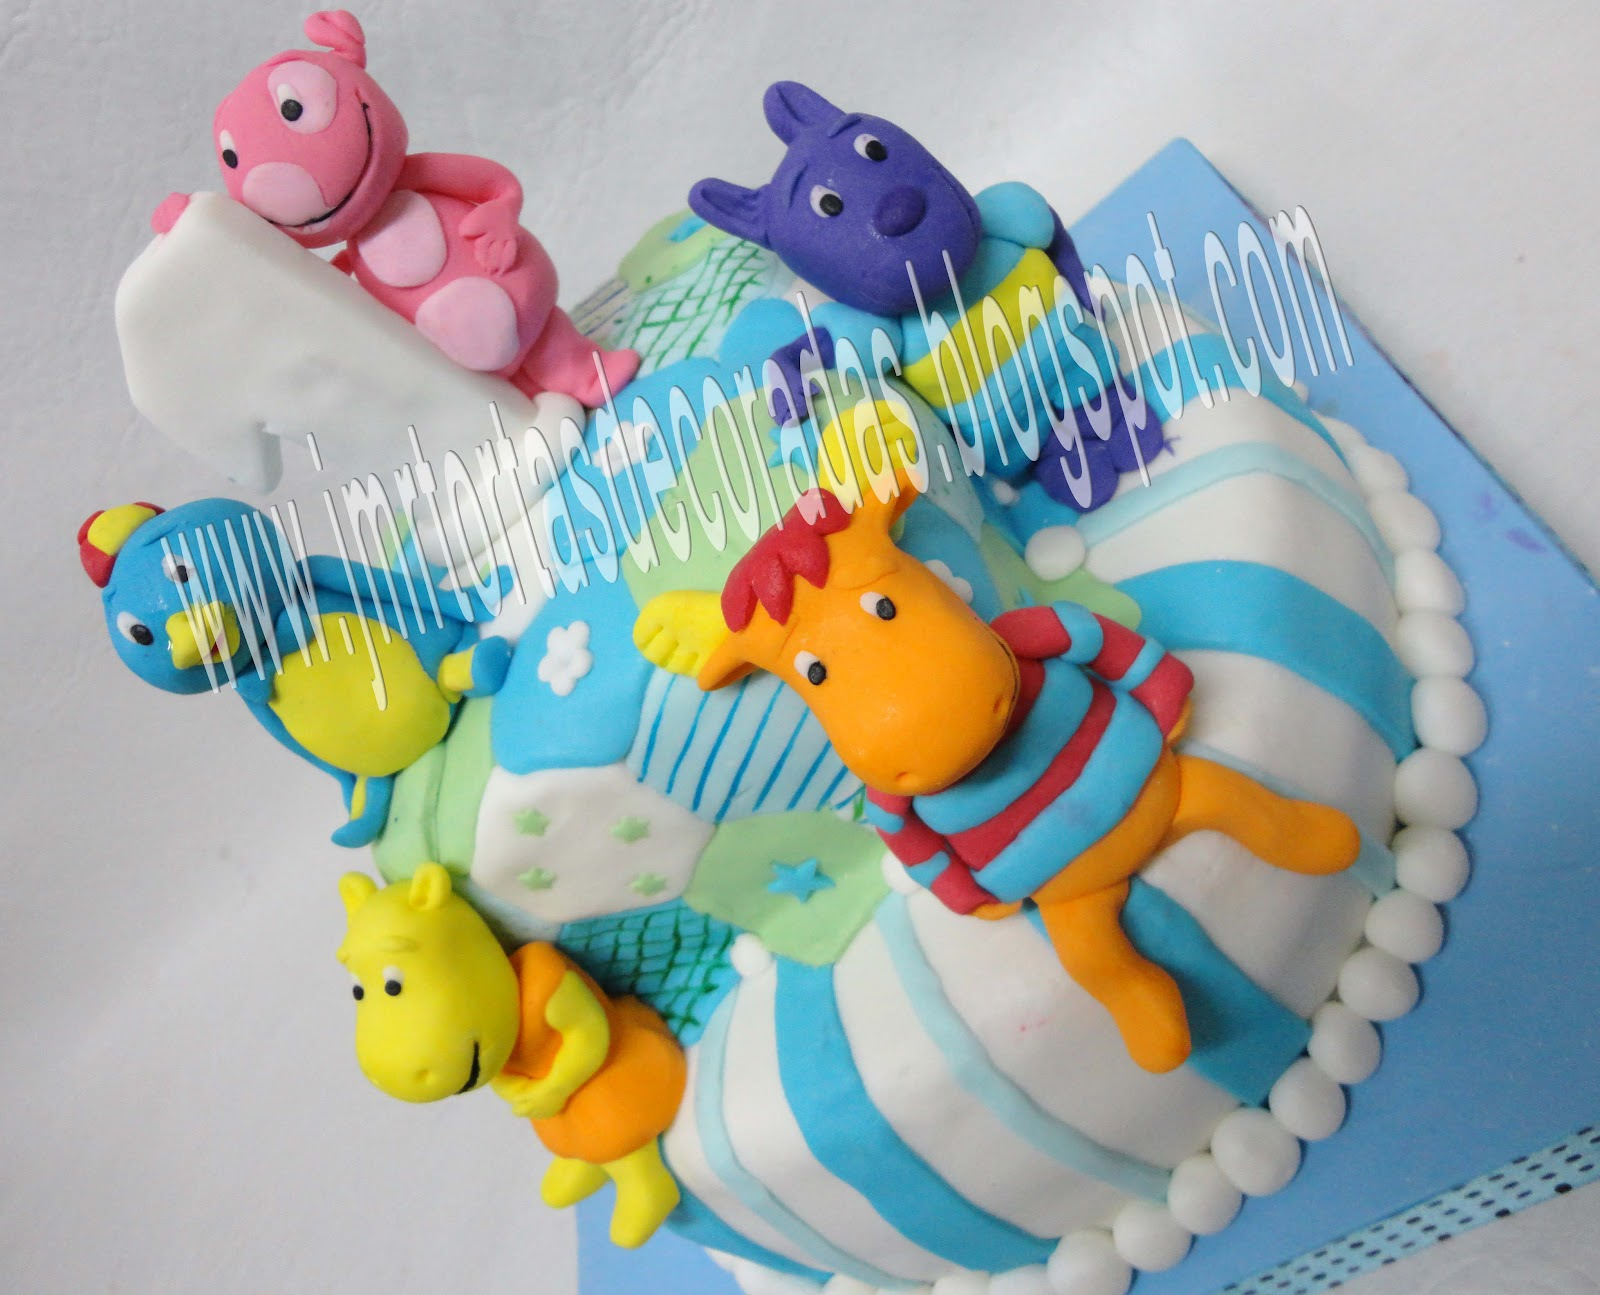 Torta Backyardigans Jmr Tortas Decoradas